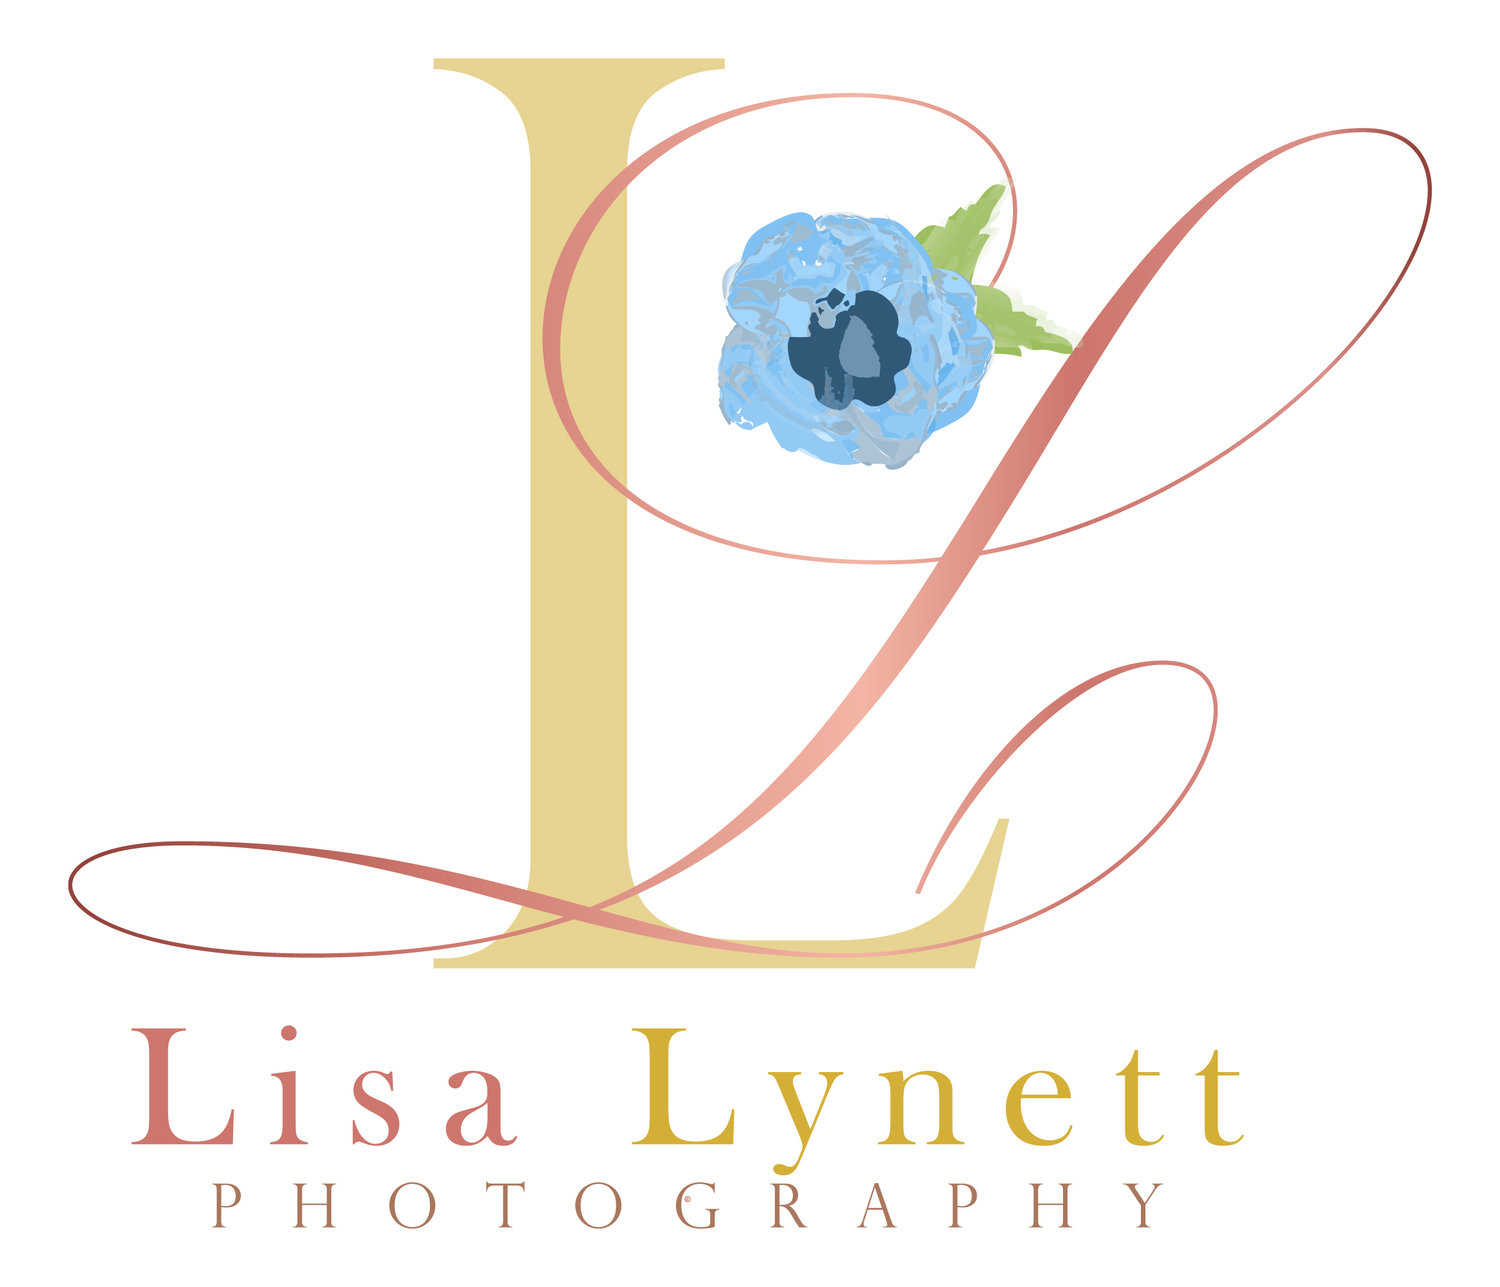 Lisa Lynett Photography